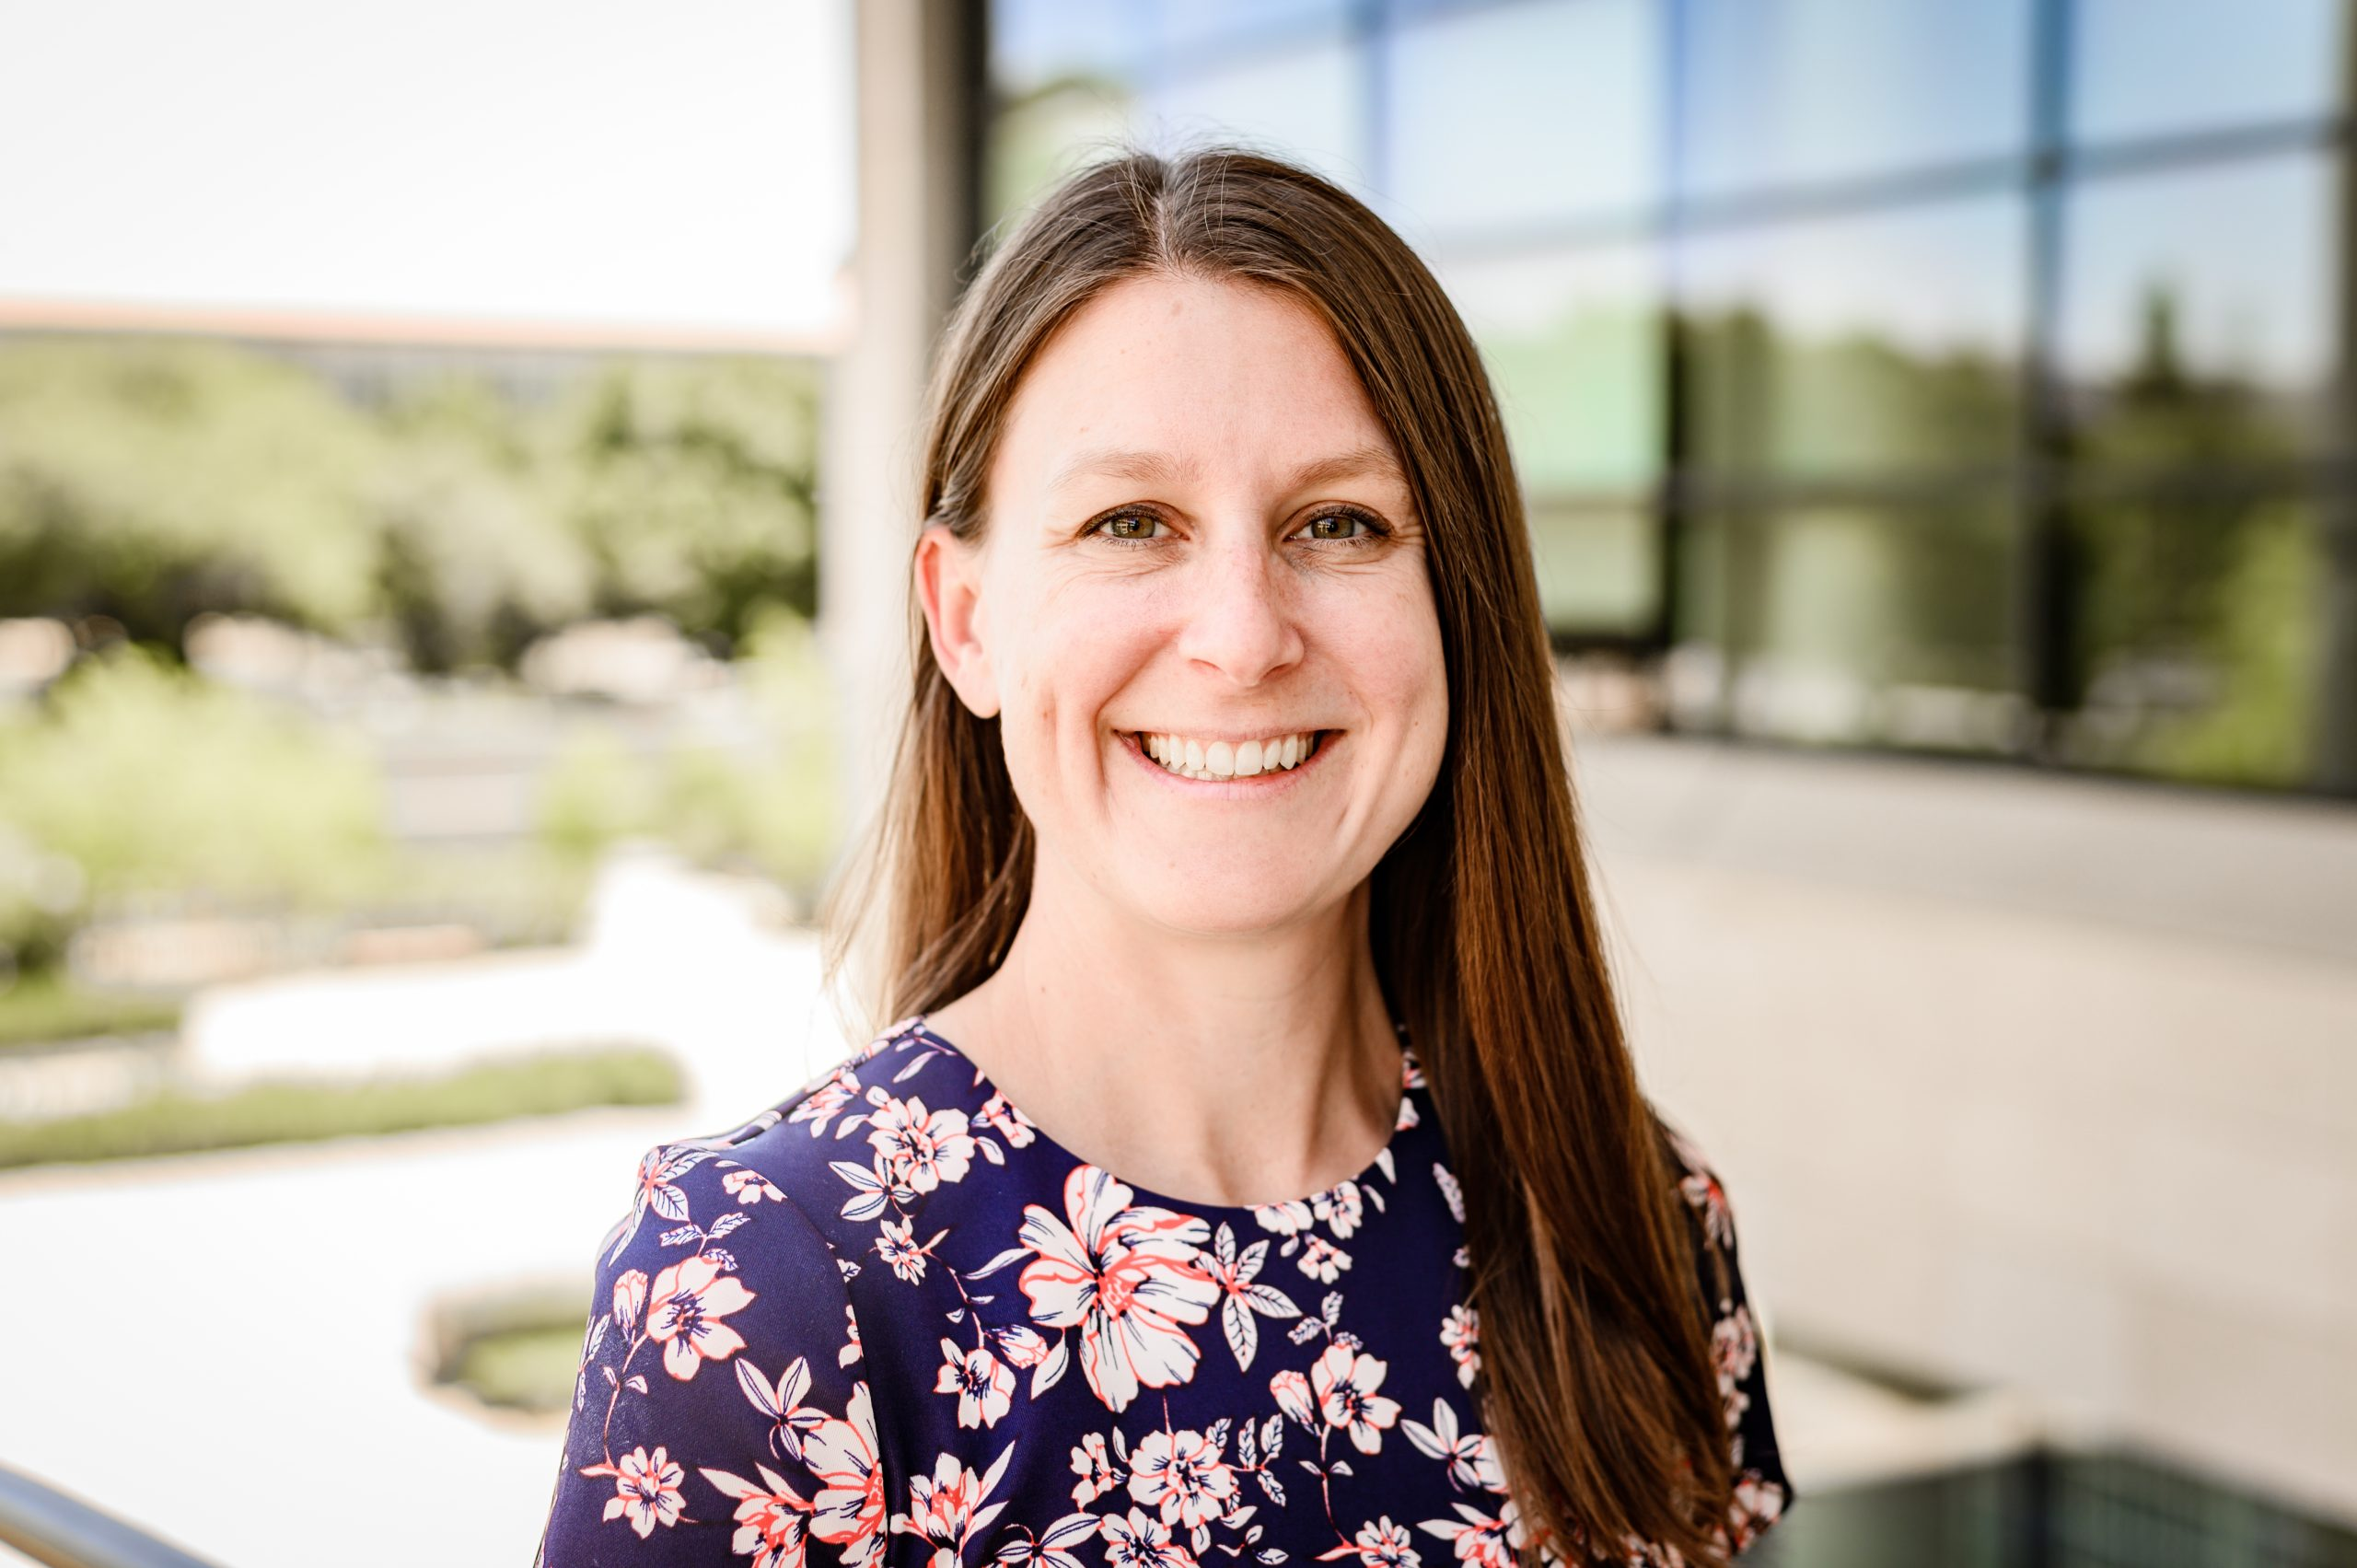 Climate Change is a Health Emergency Hanna Linstadt, MD is a practicing emergency medicine physician and the Living Closer Foundation Fellow in Climate Change and Health Science Policy at the University of Colorado Department of Emergency Medicine.